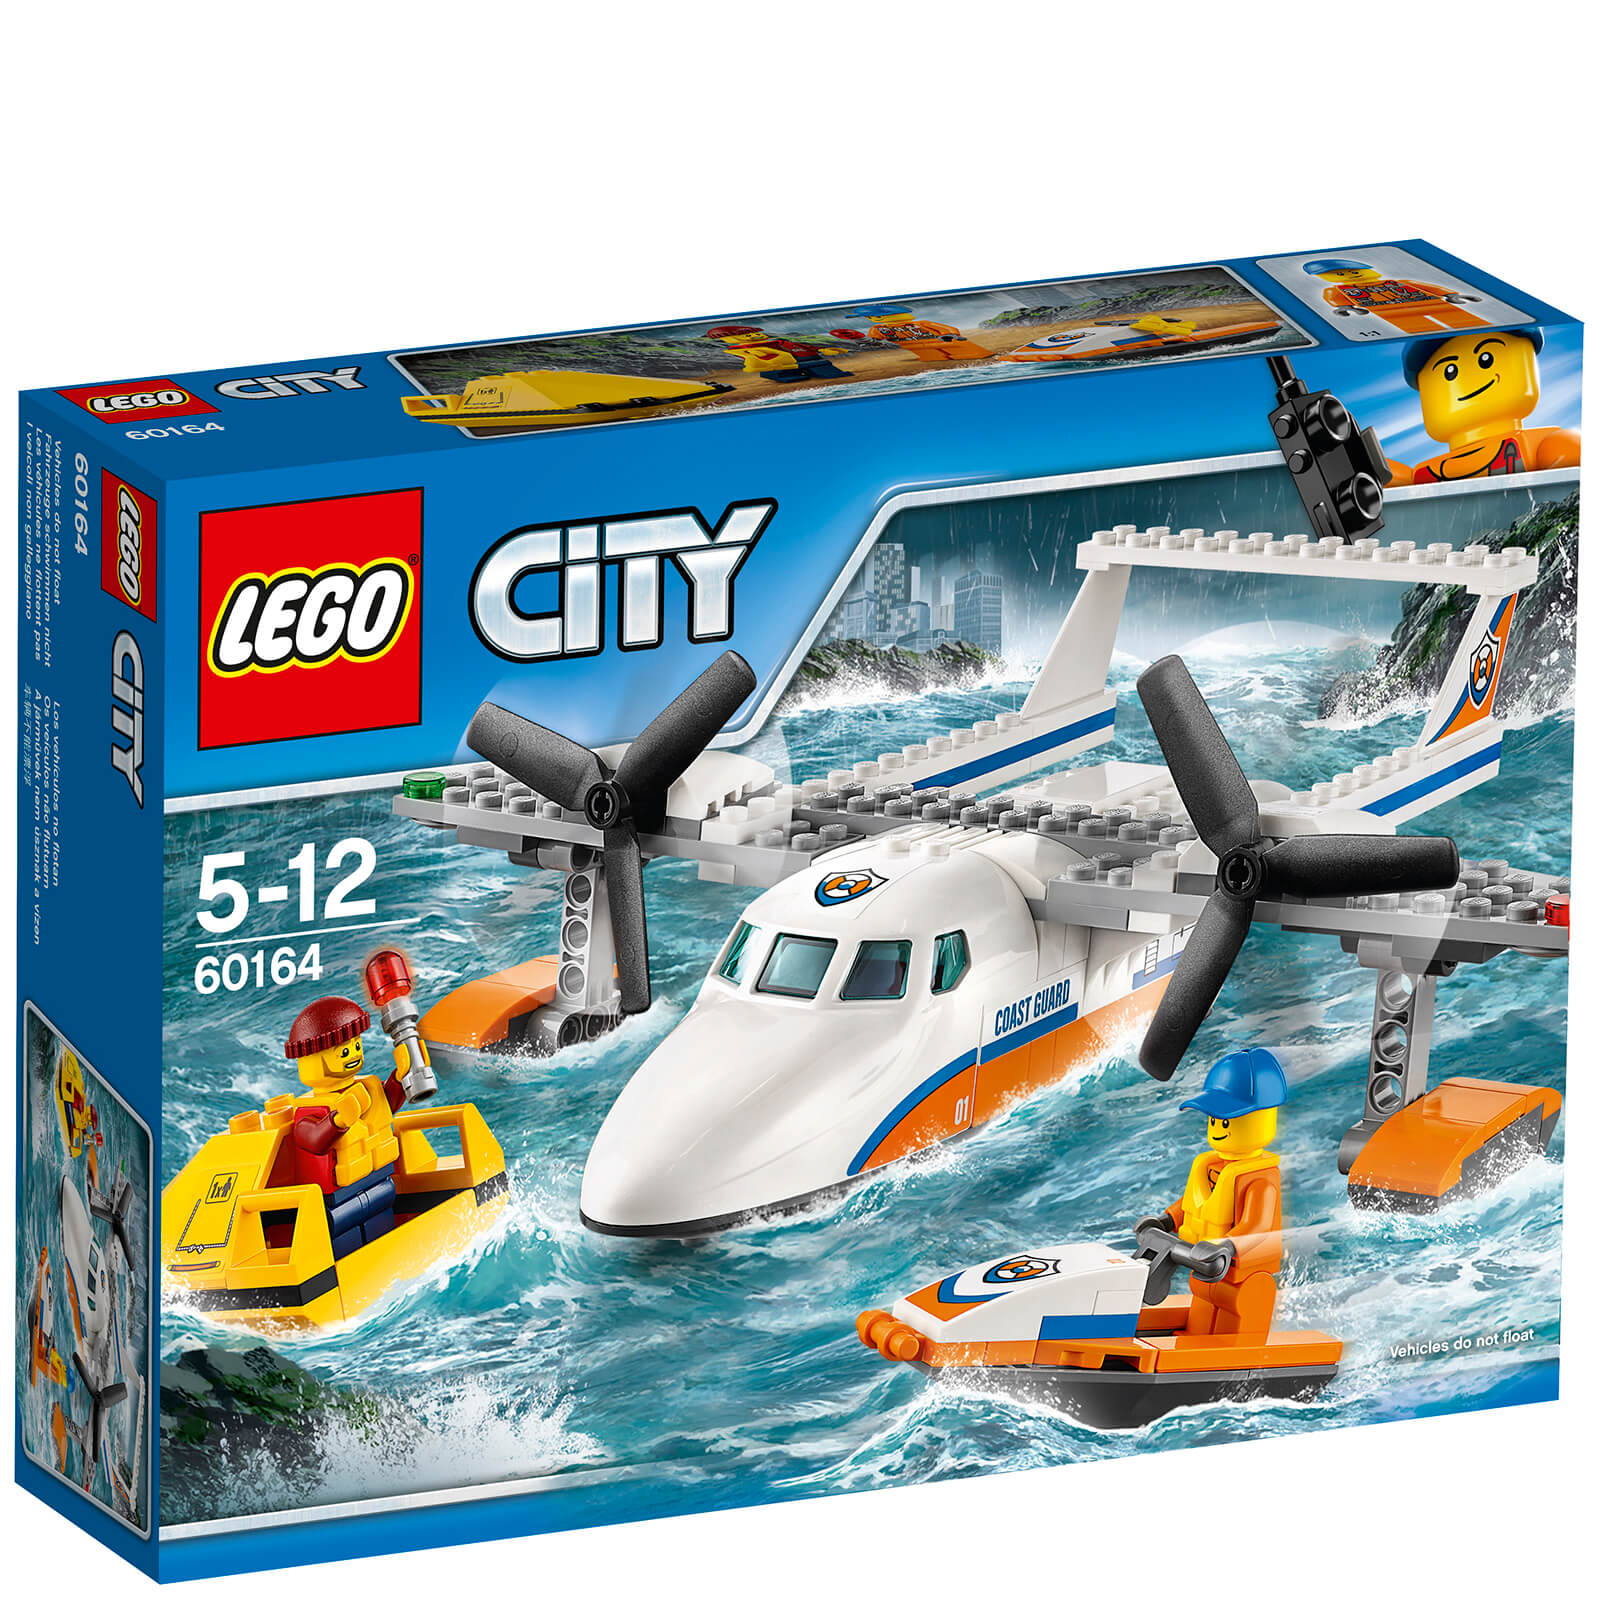 LEGO City: Coast Guard Sea Rescue Plane (60164)